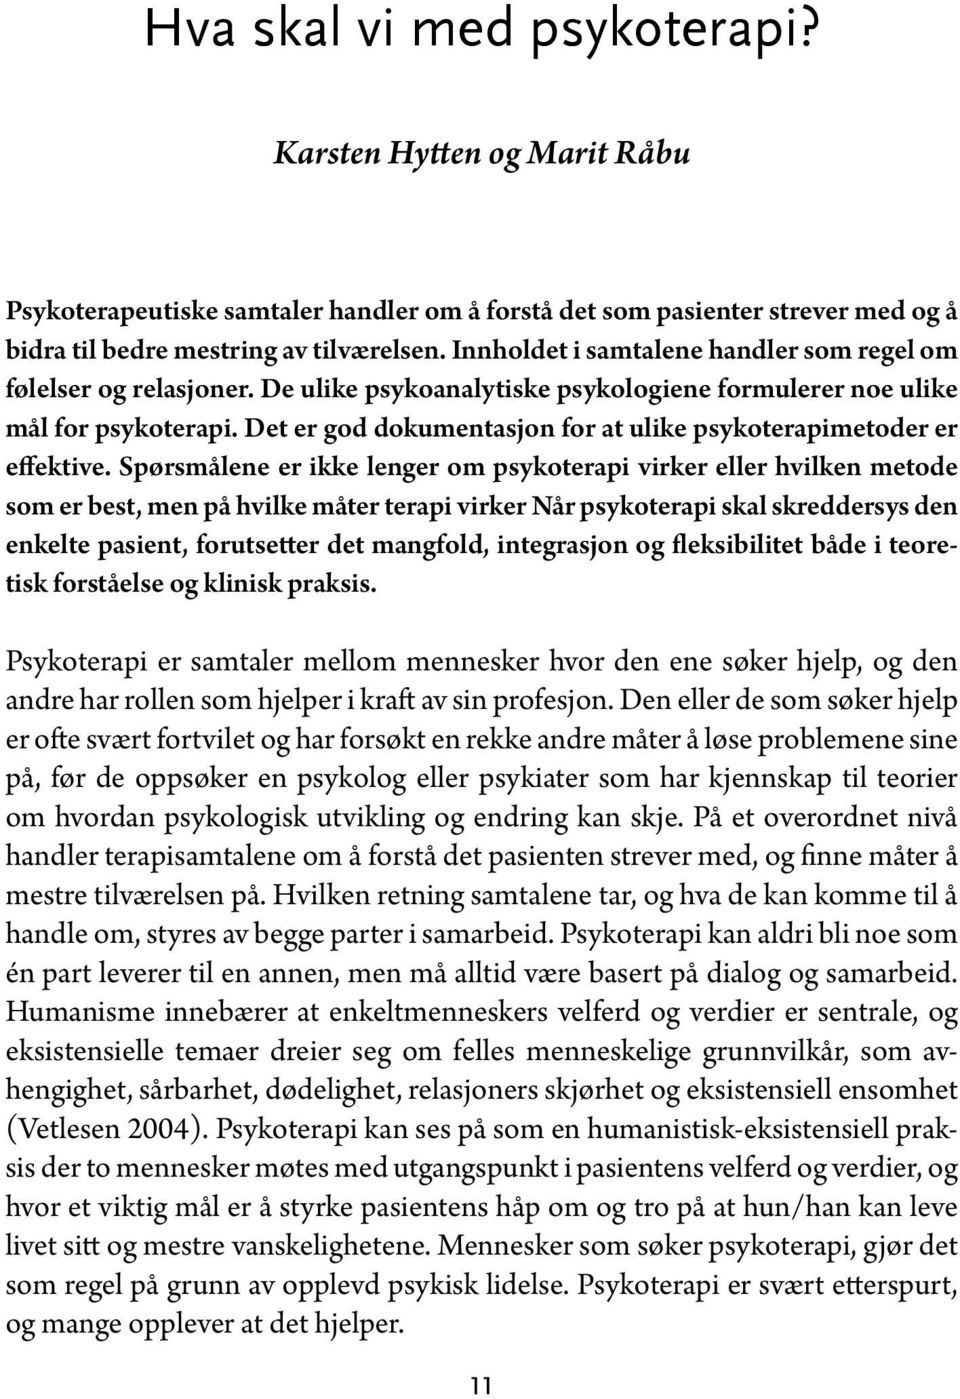 Det er god dokumentasjon for at ulike psykoterapimetoder er effektive.